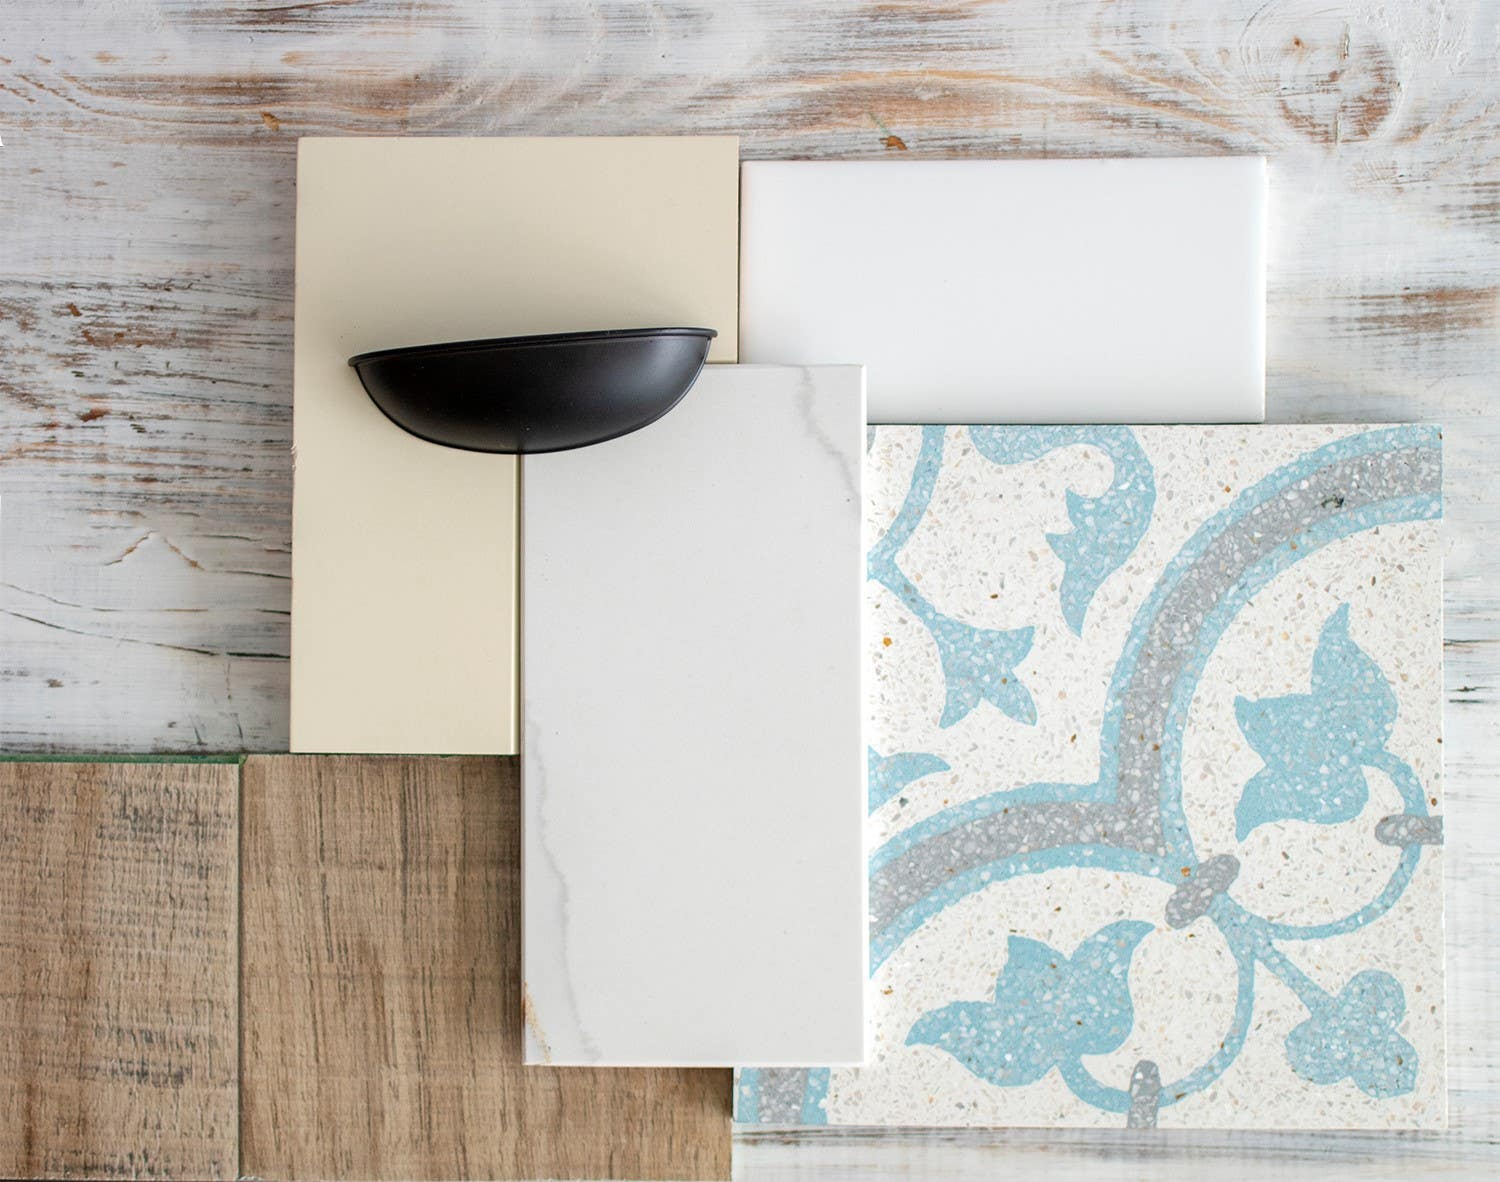 design mood board featuring white tile, black cup pull, white cabinet sample and wood background